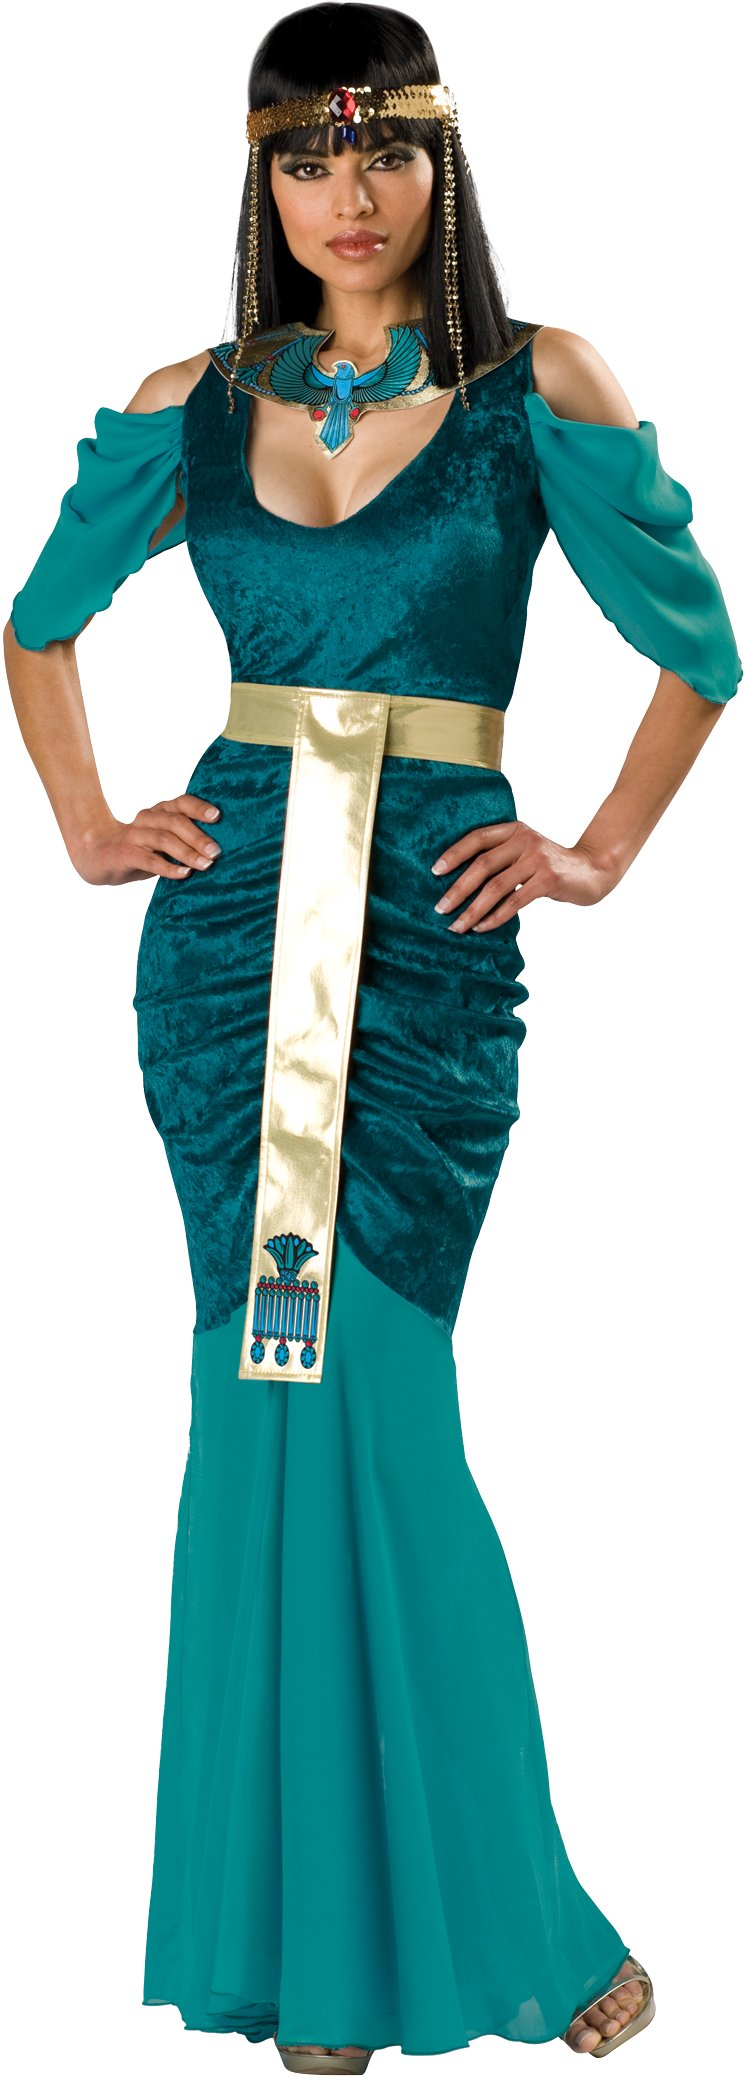 Adult Cleopatra Costume - Halloween Costumes for Adults